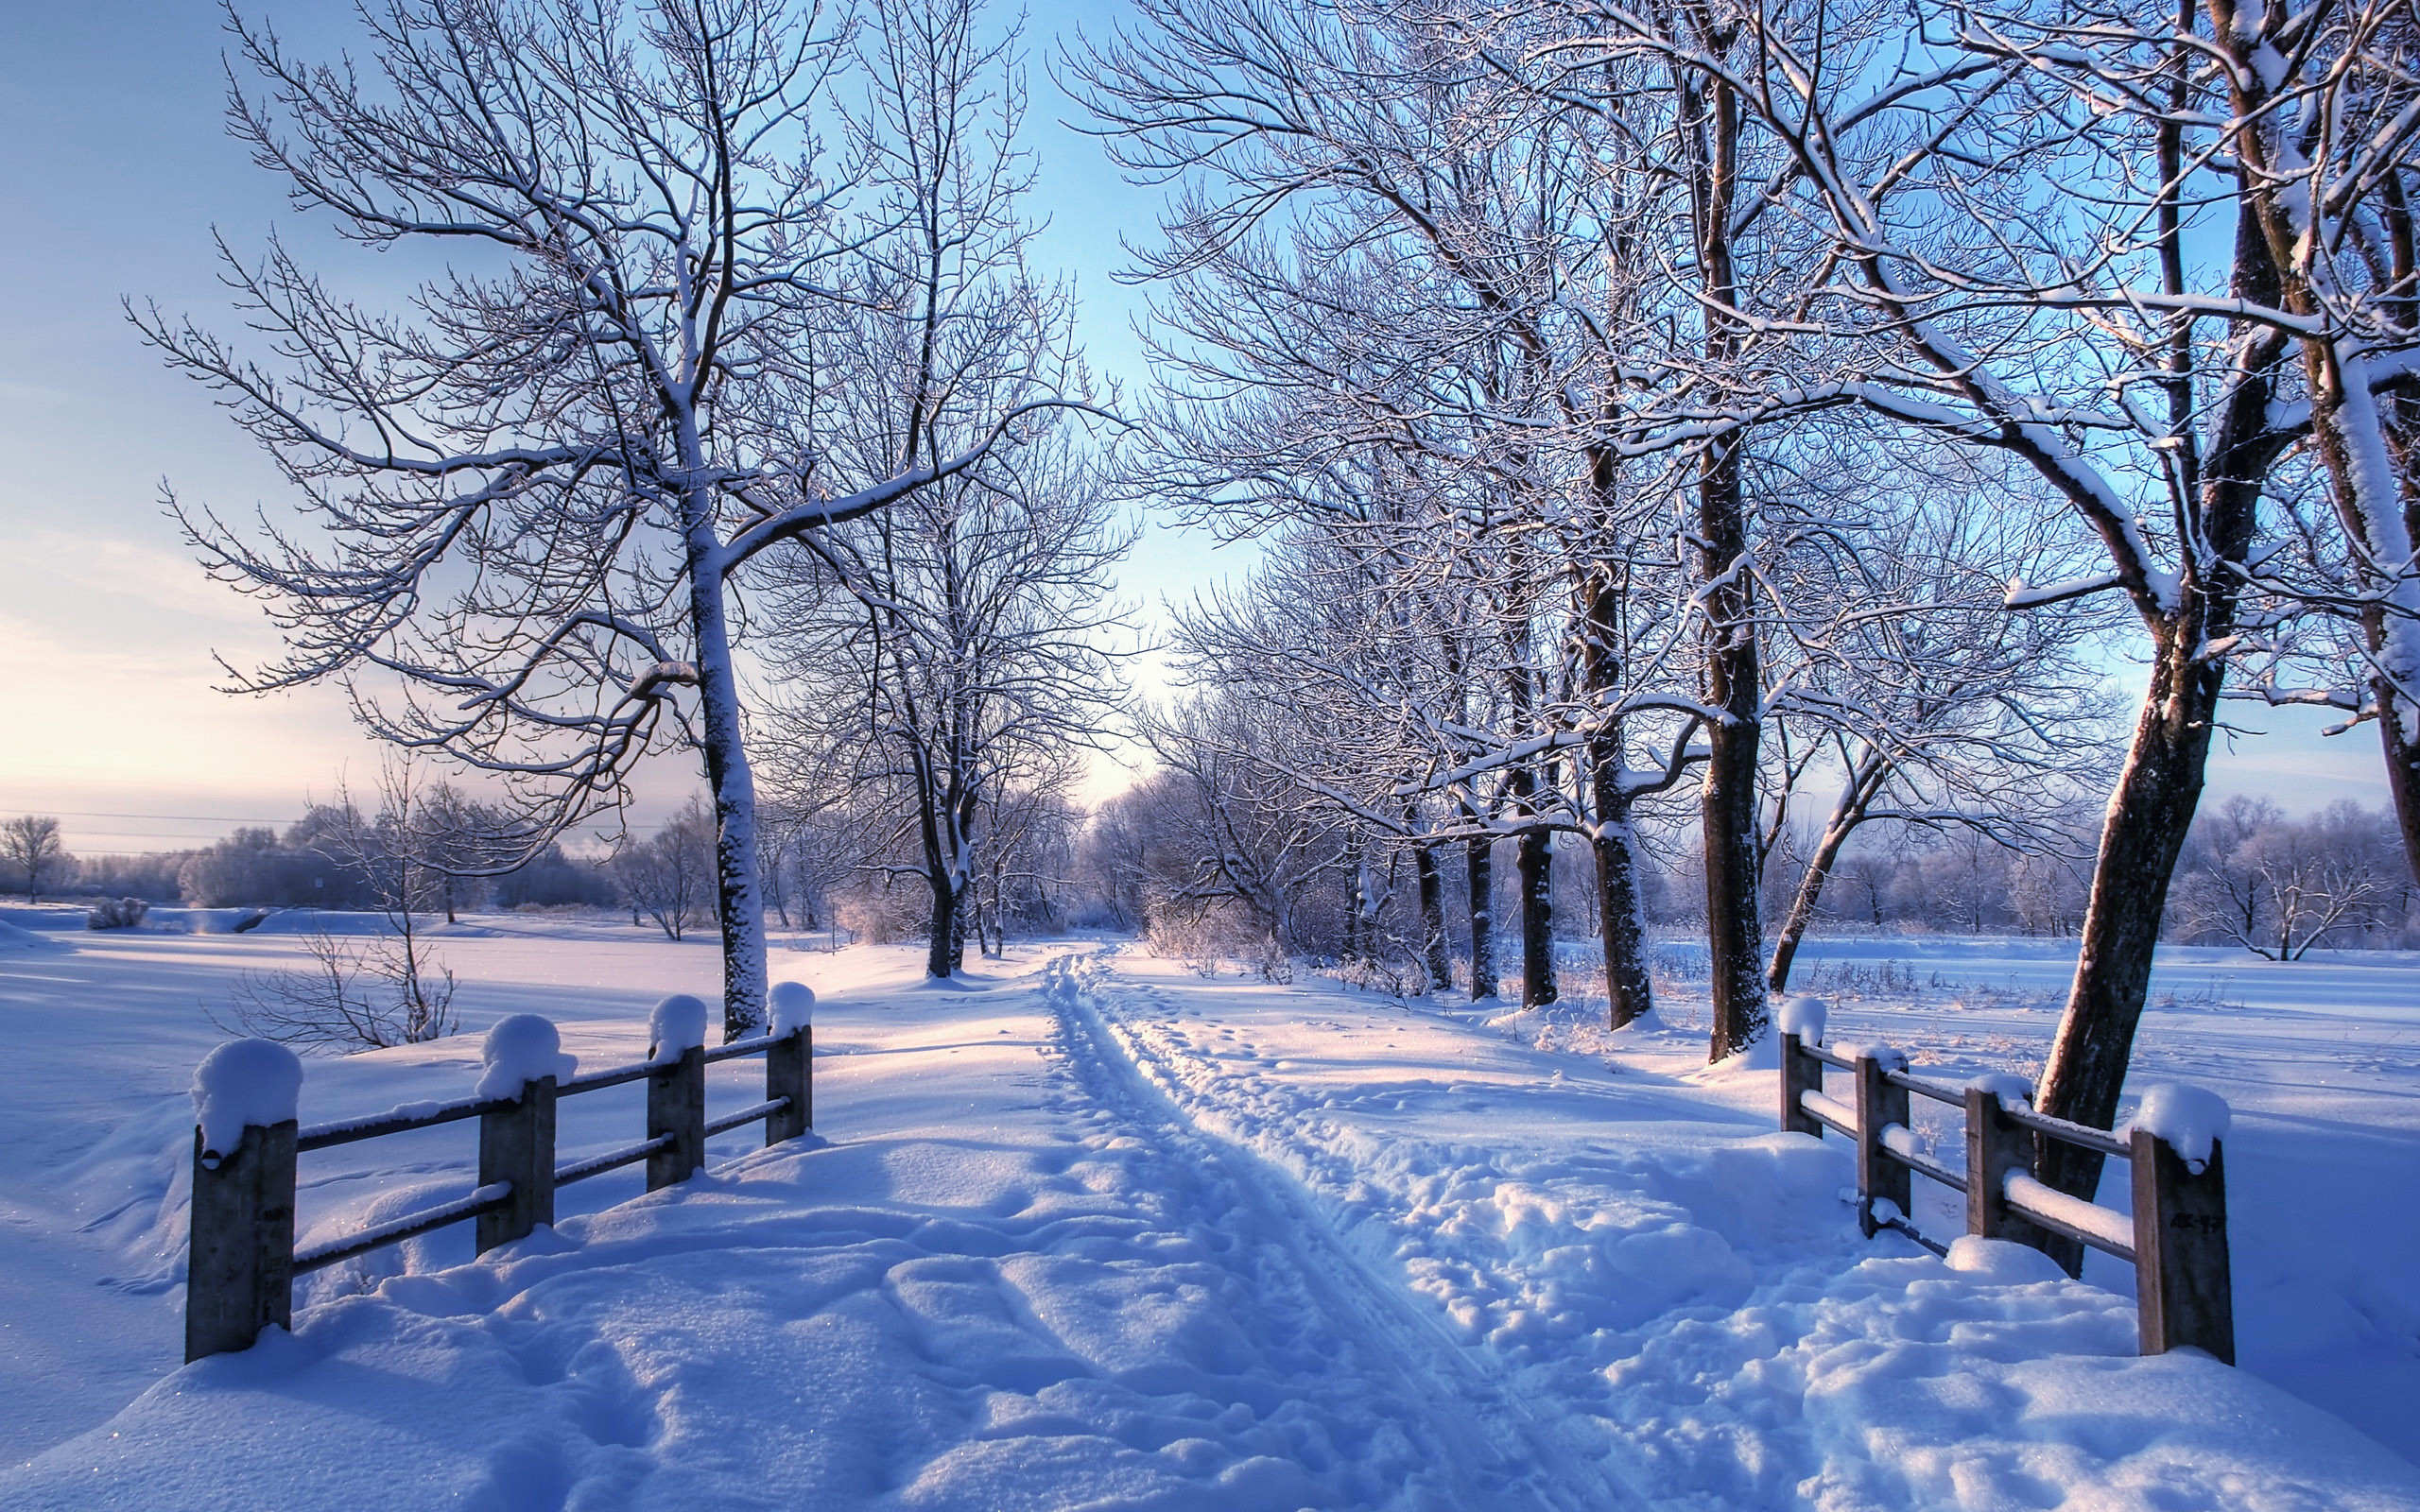 winter wonderland desktop background 54 images